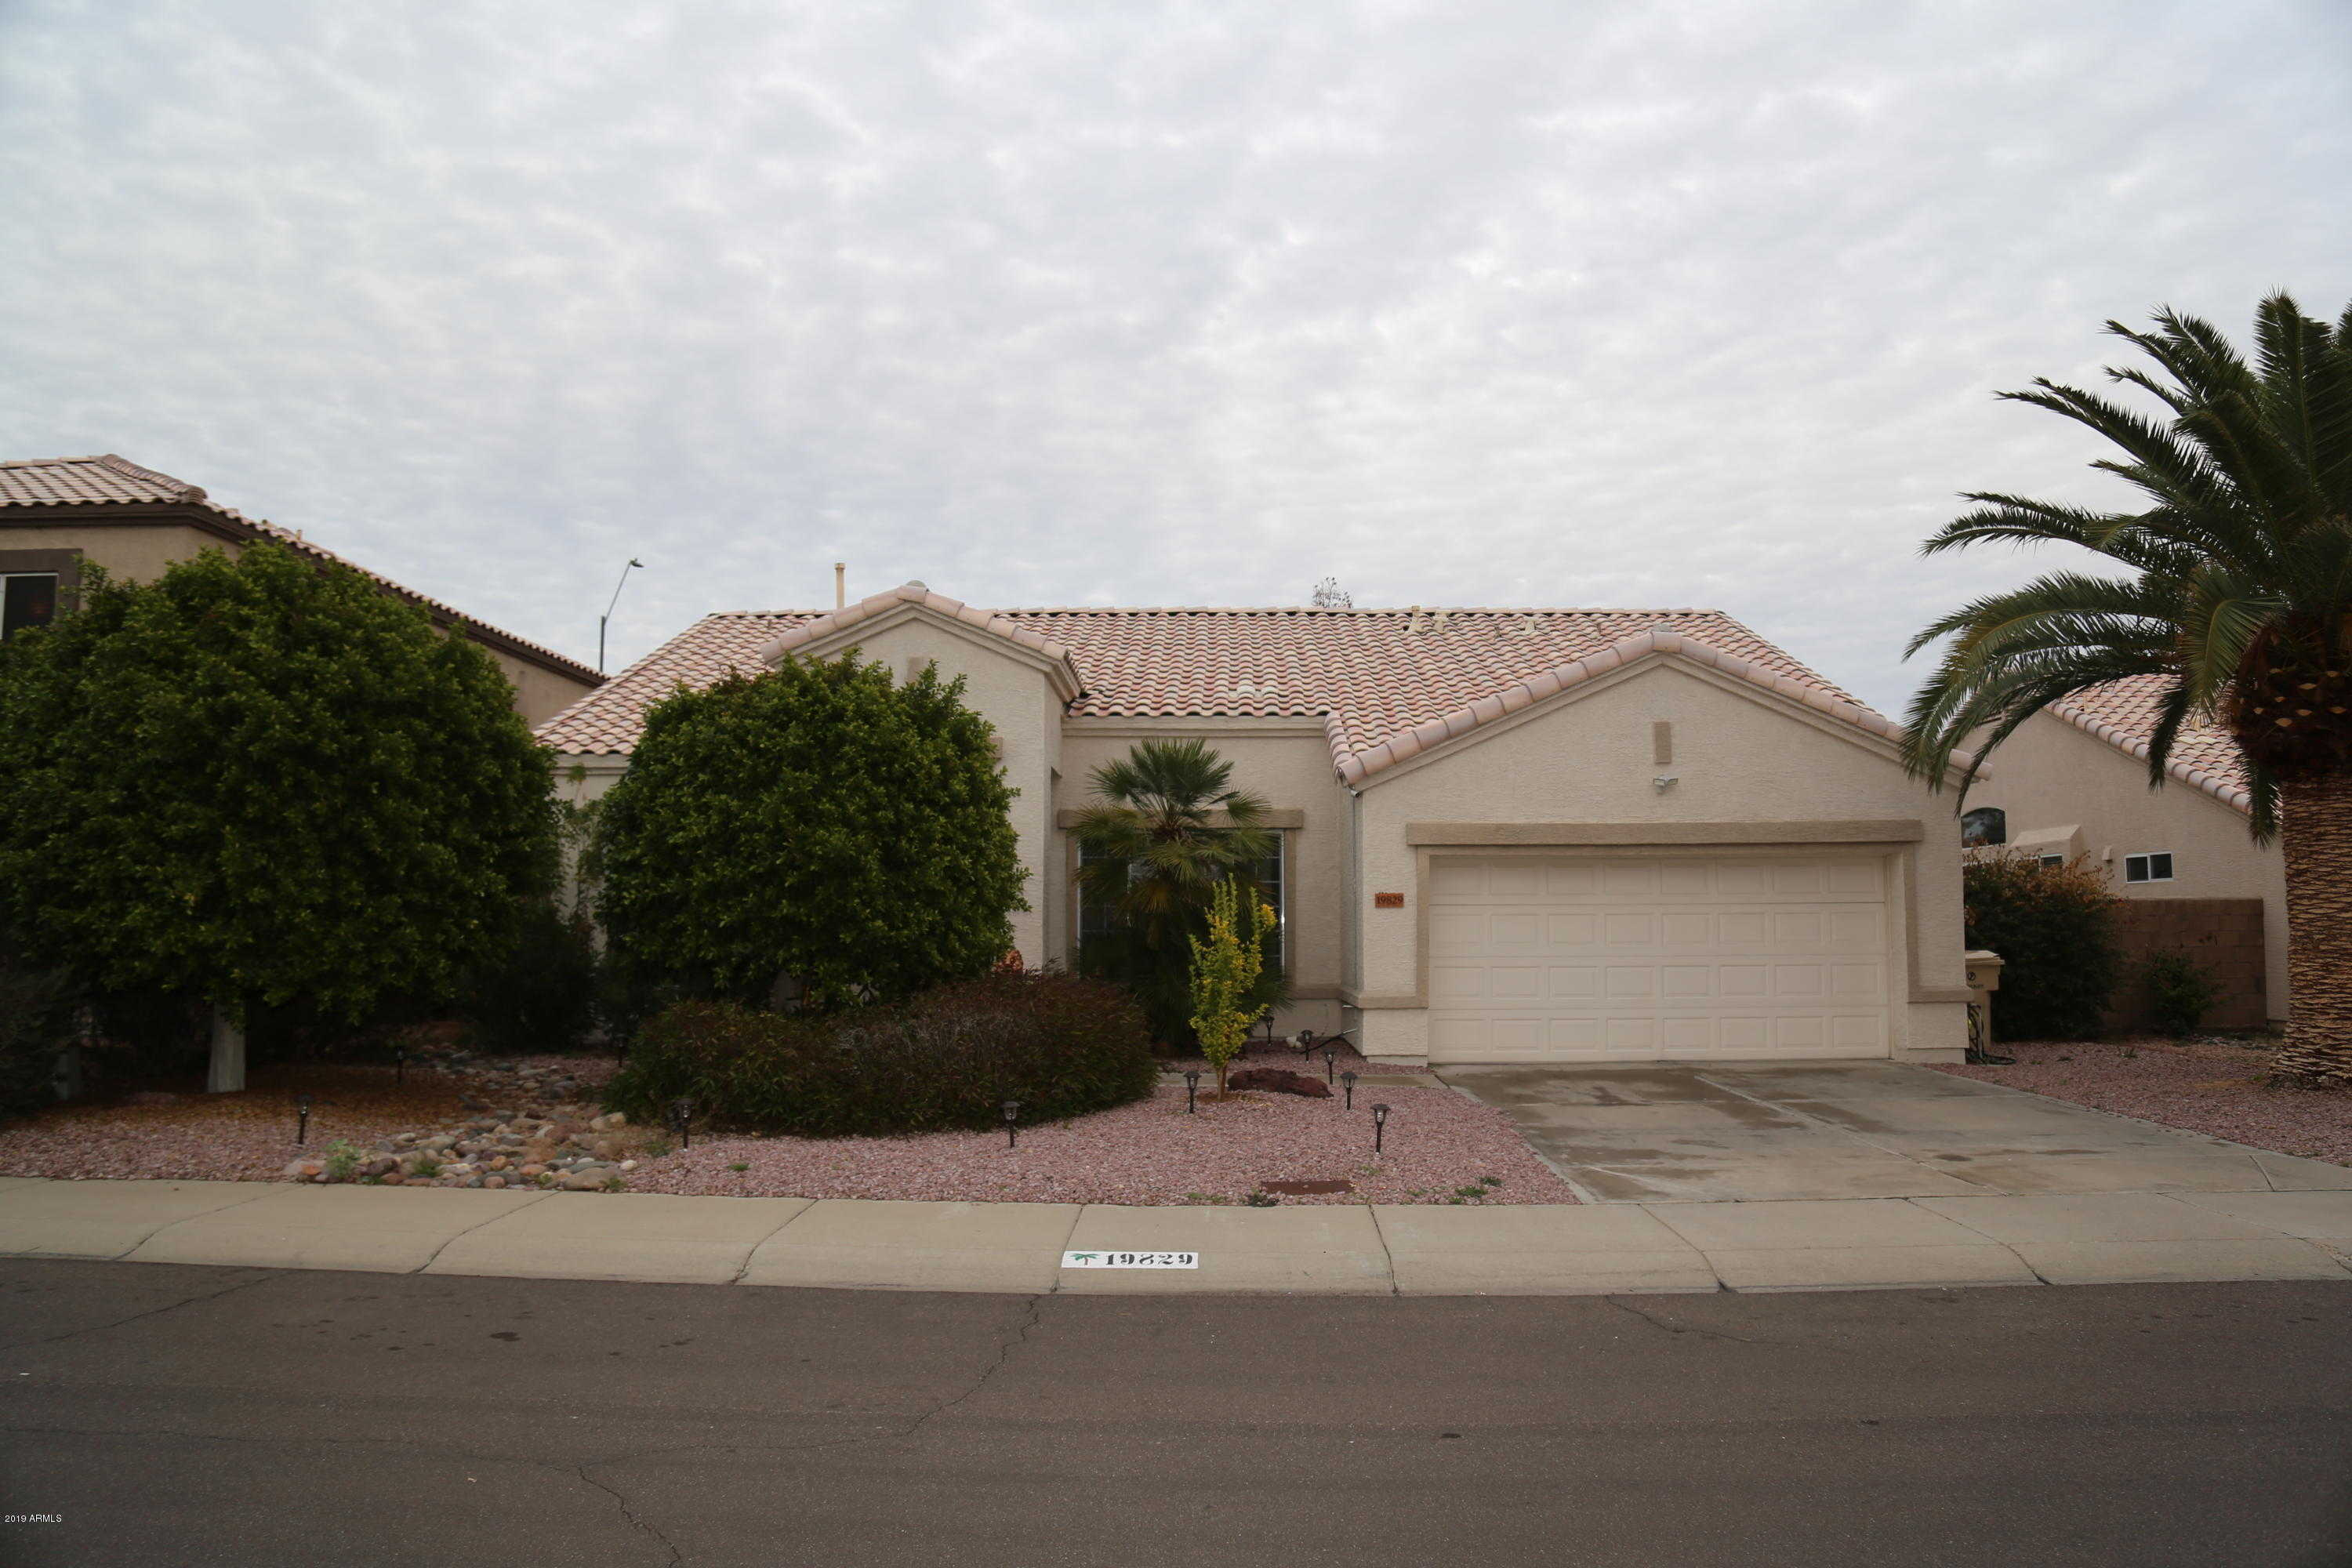 $319,000 - 3Br/2Ba - Home for Sale in Arrowhead Heights, Glendale